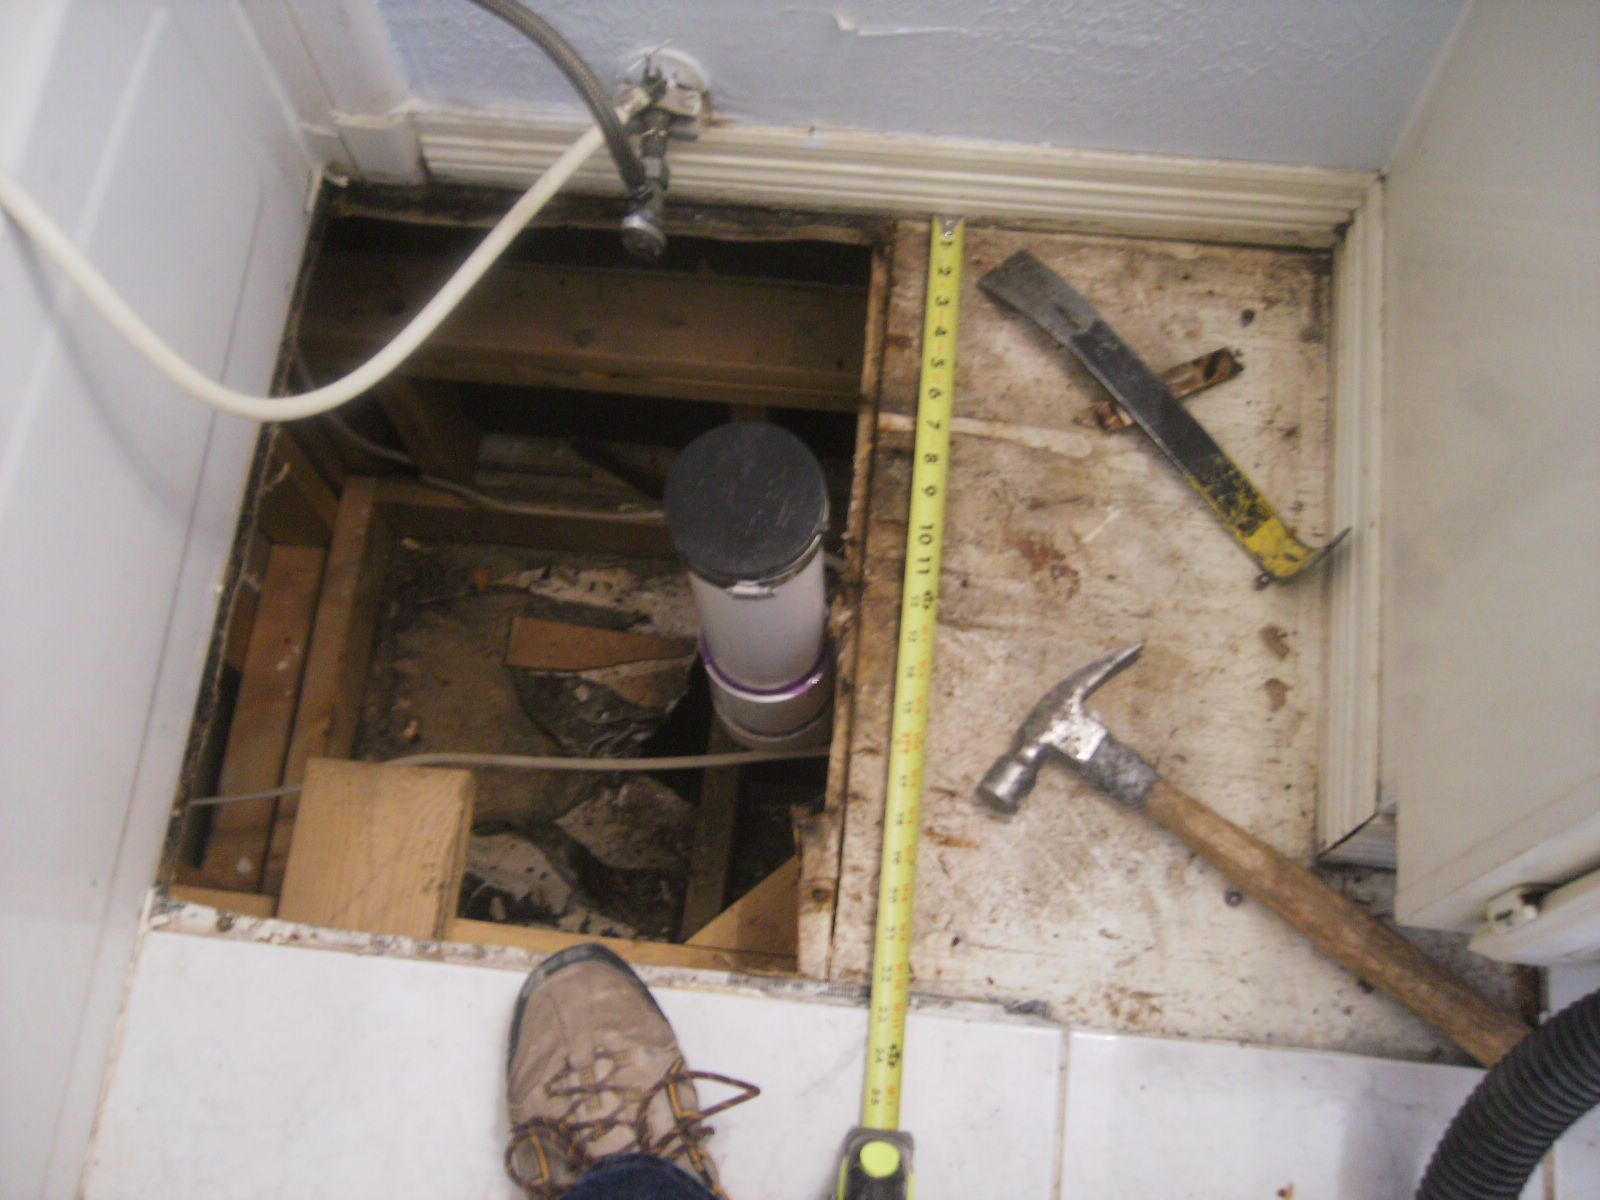 Anatomy of a floor tile repair in photos confessions of a tile this is a common problem we run into with wood floors a toilet flange valve upper bowel or water line gets loose or old and starts leaking dailygadgetfo Choice Image